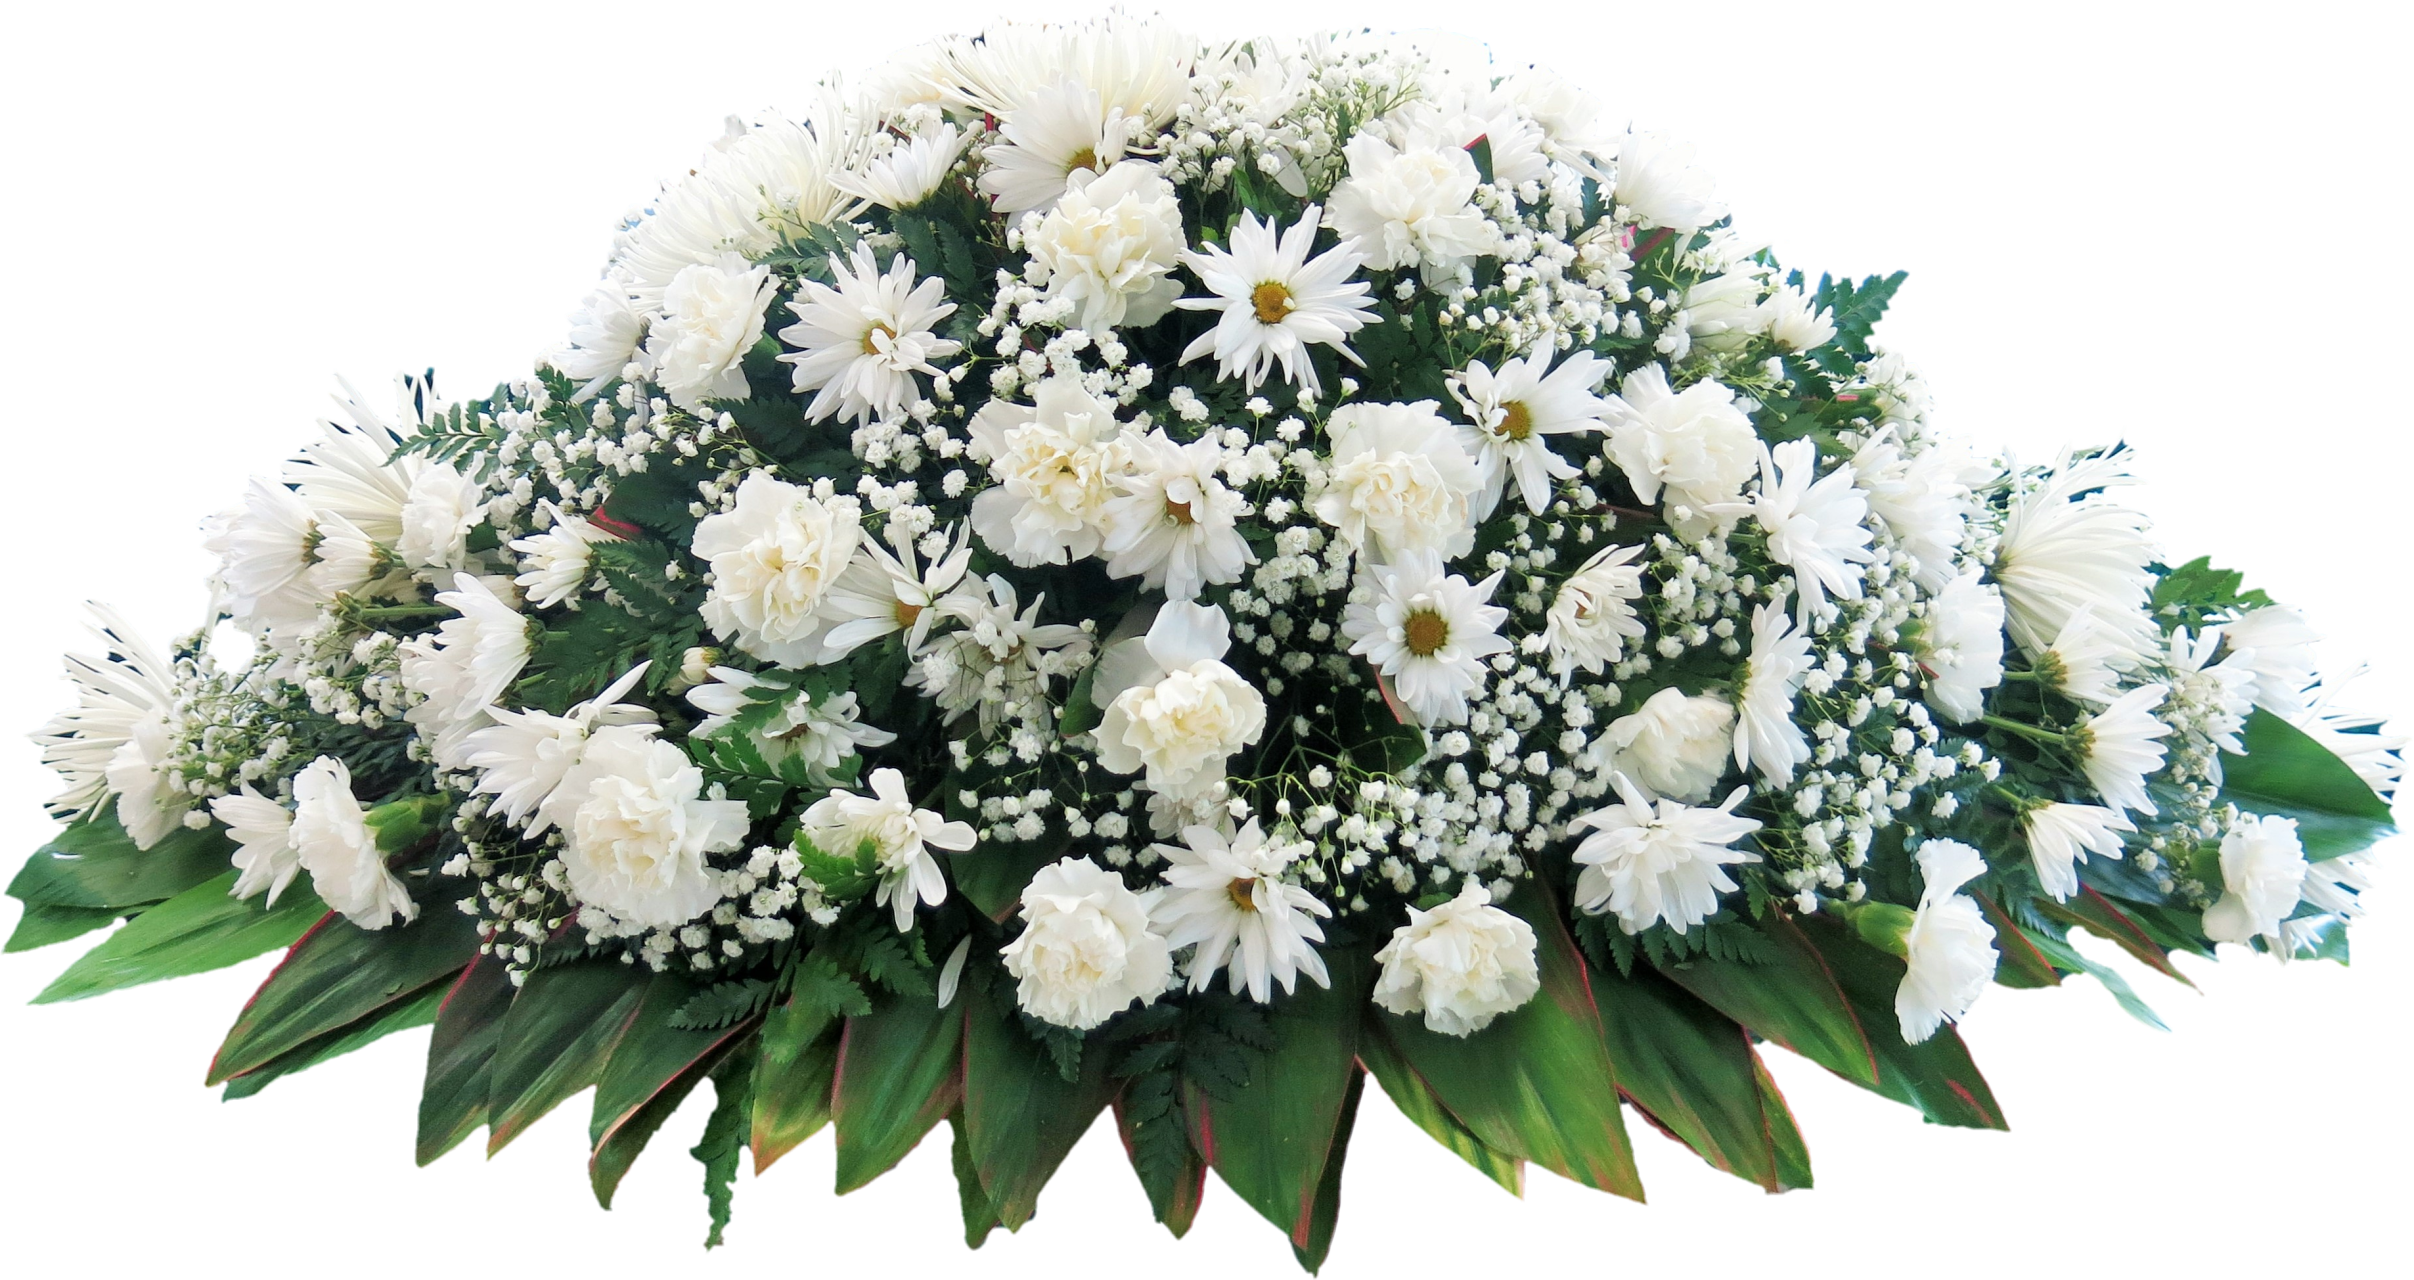 Funeral Flowers Png - Funeral Flowers Transparent & PNG Clipart Free Download - YWD